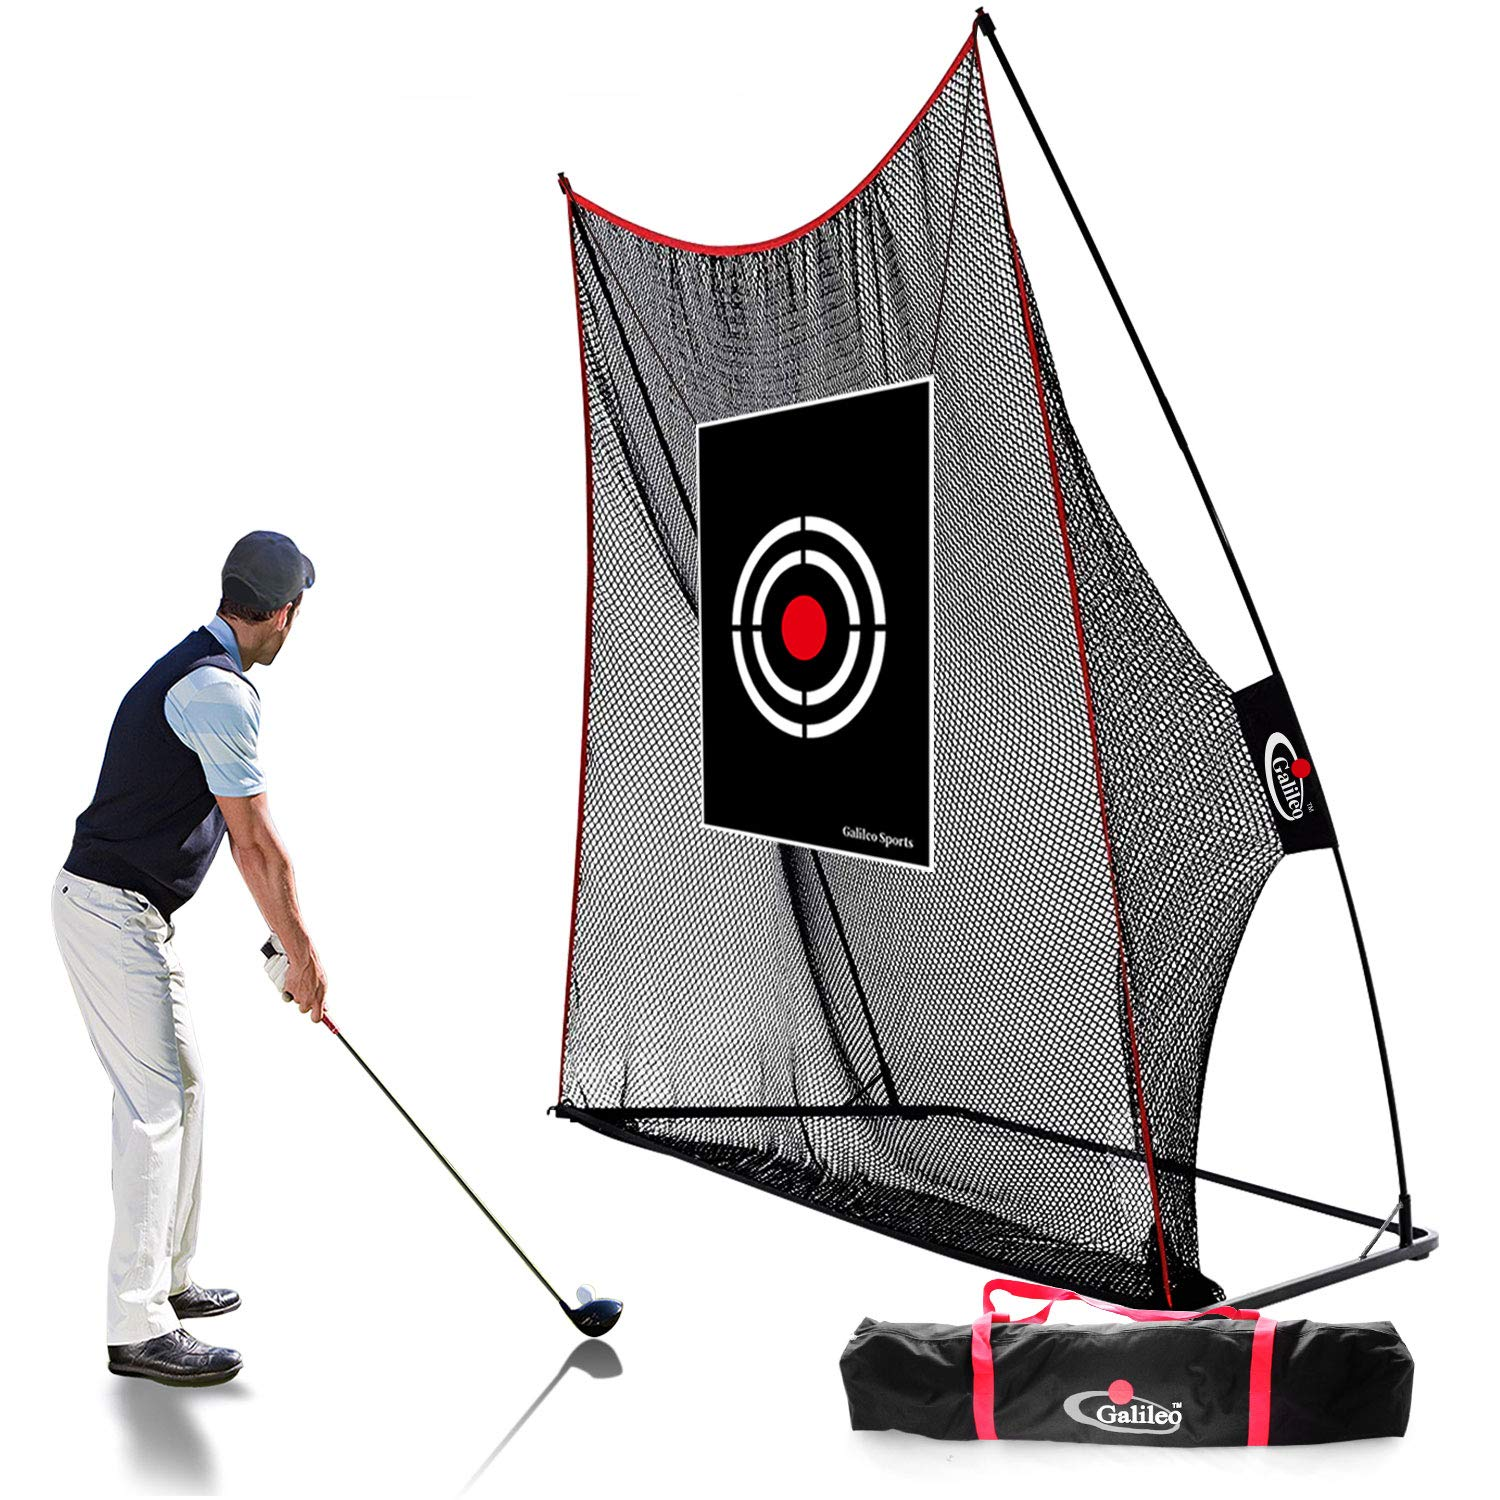 GALILEO Golf Practice Net Golf Hitting Nets Driving Range Indoor&Outdoor Golf Training Aids with Target&Carry Bag 10'(H) x 8'(W) by GALILEO